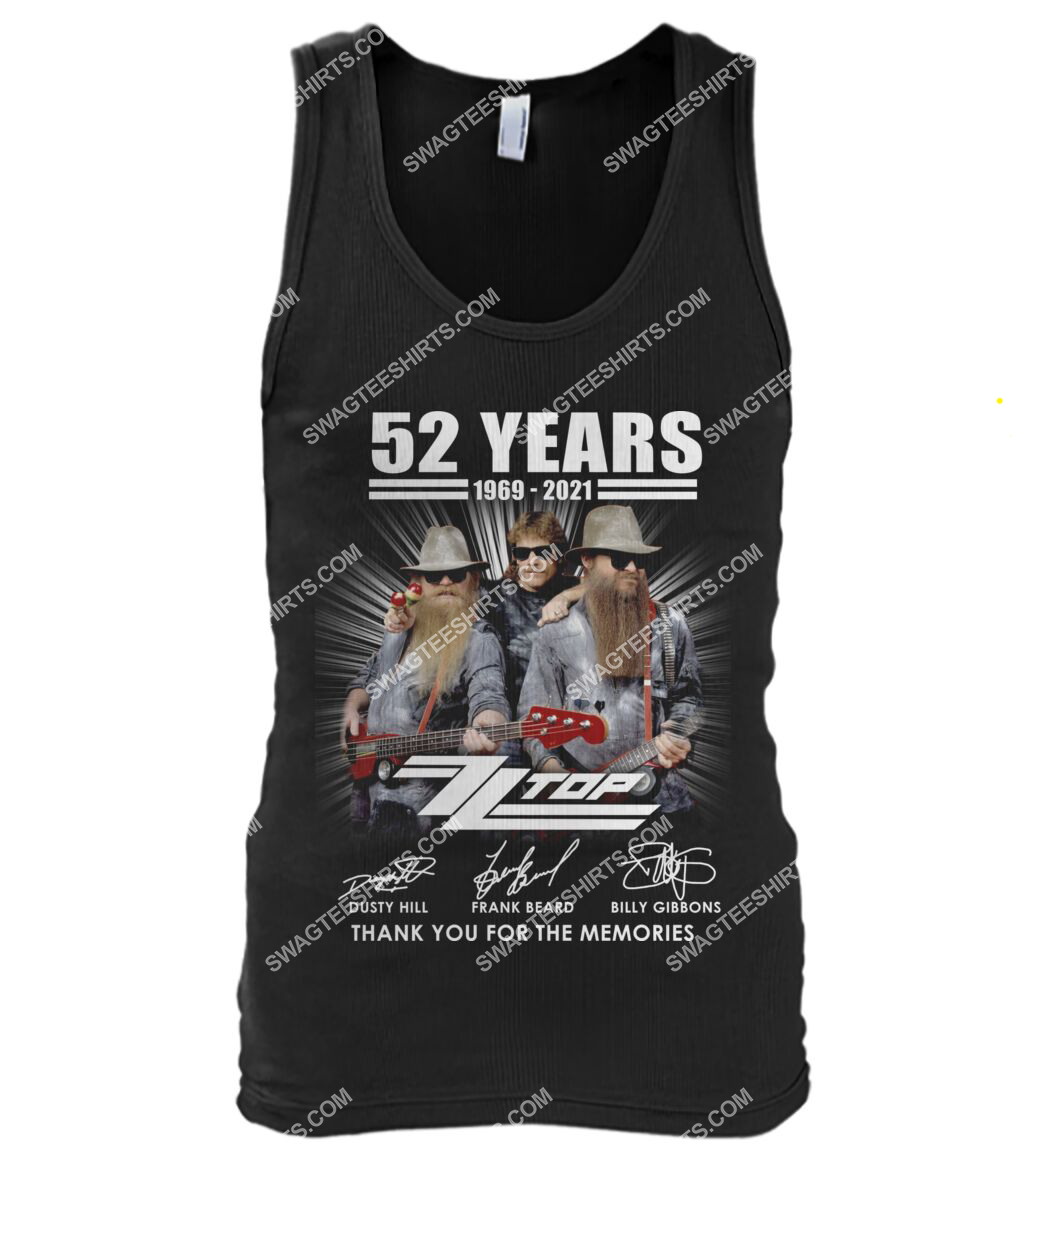 vintage zz top 52 years thank you for memories signature tank top 1